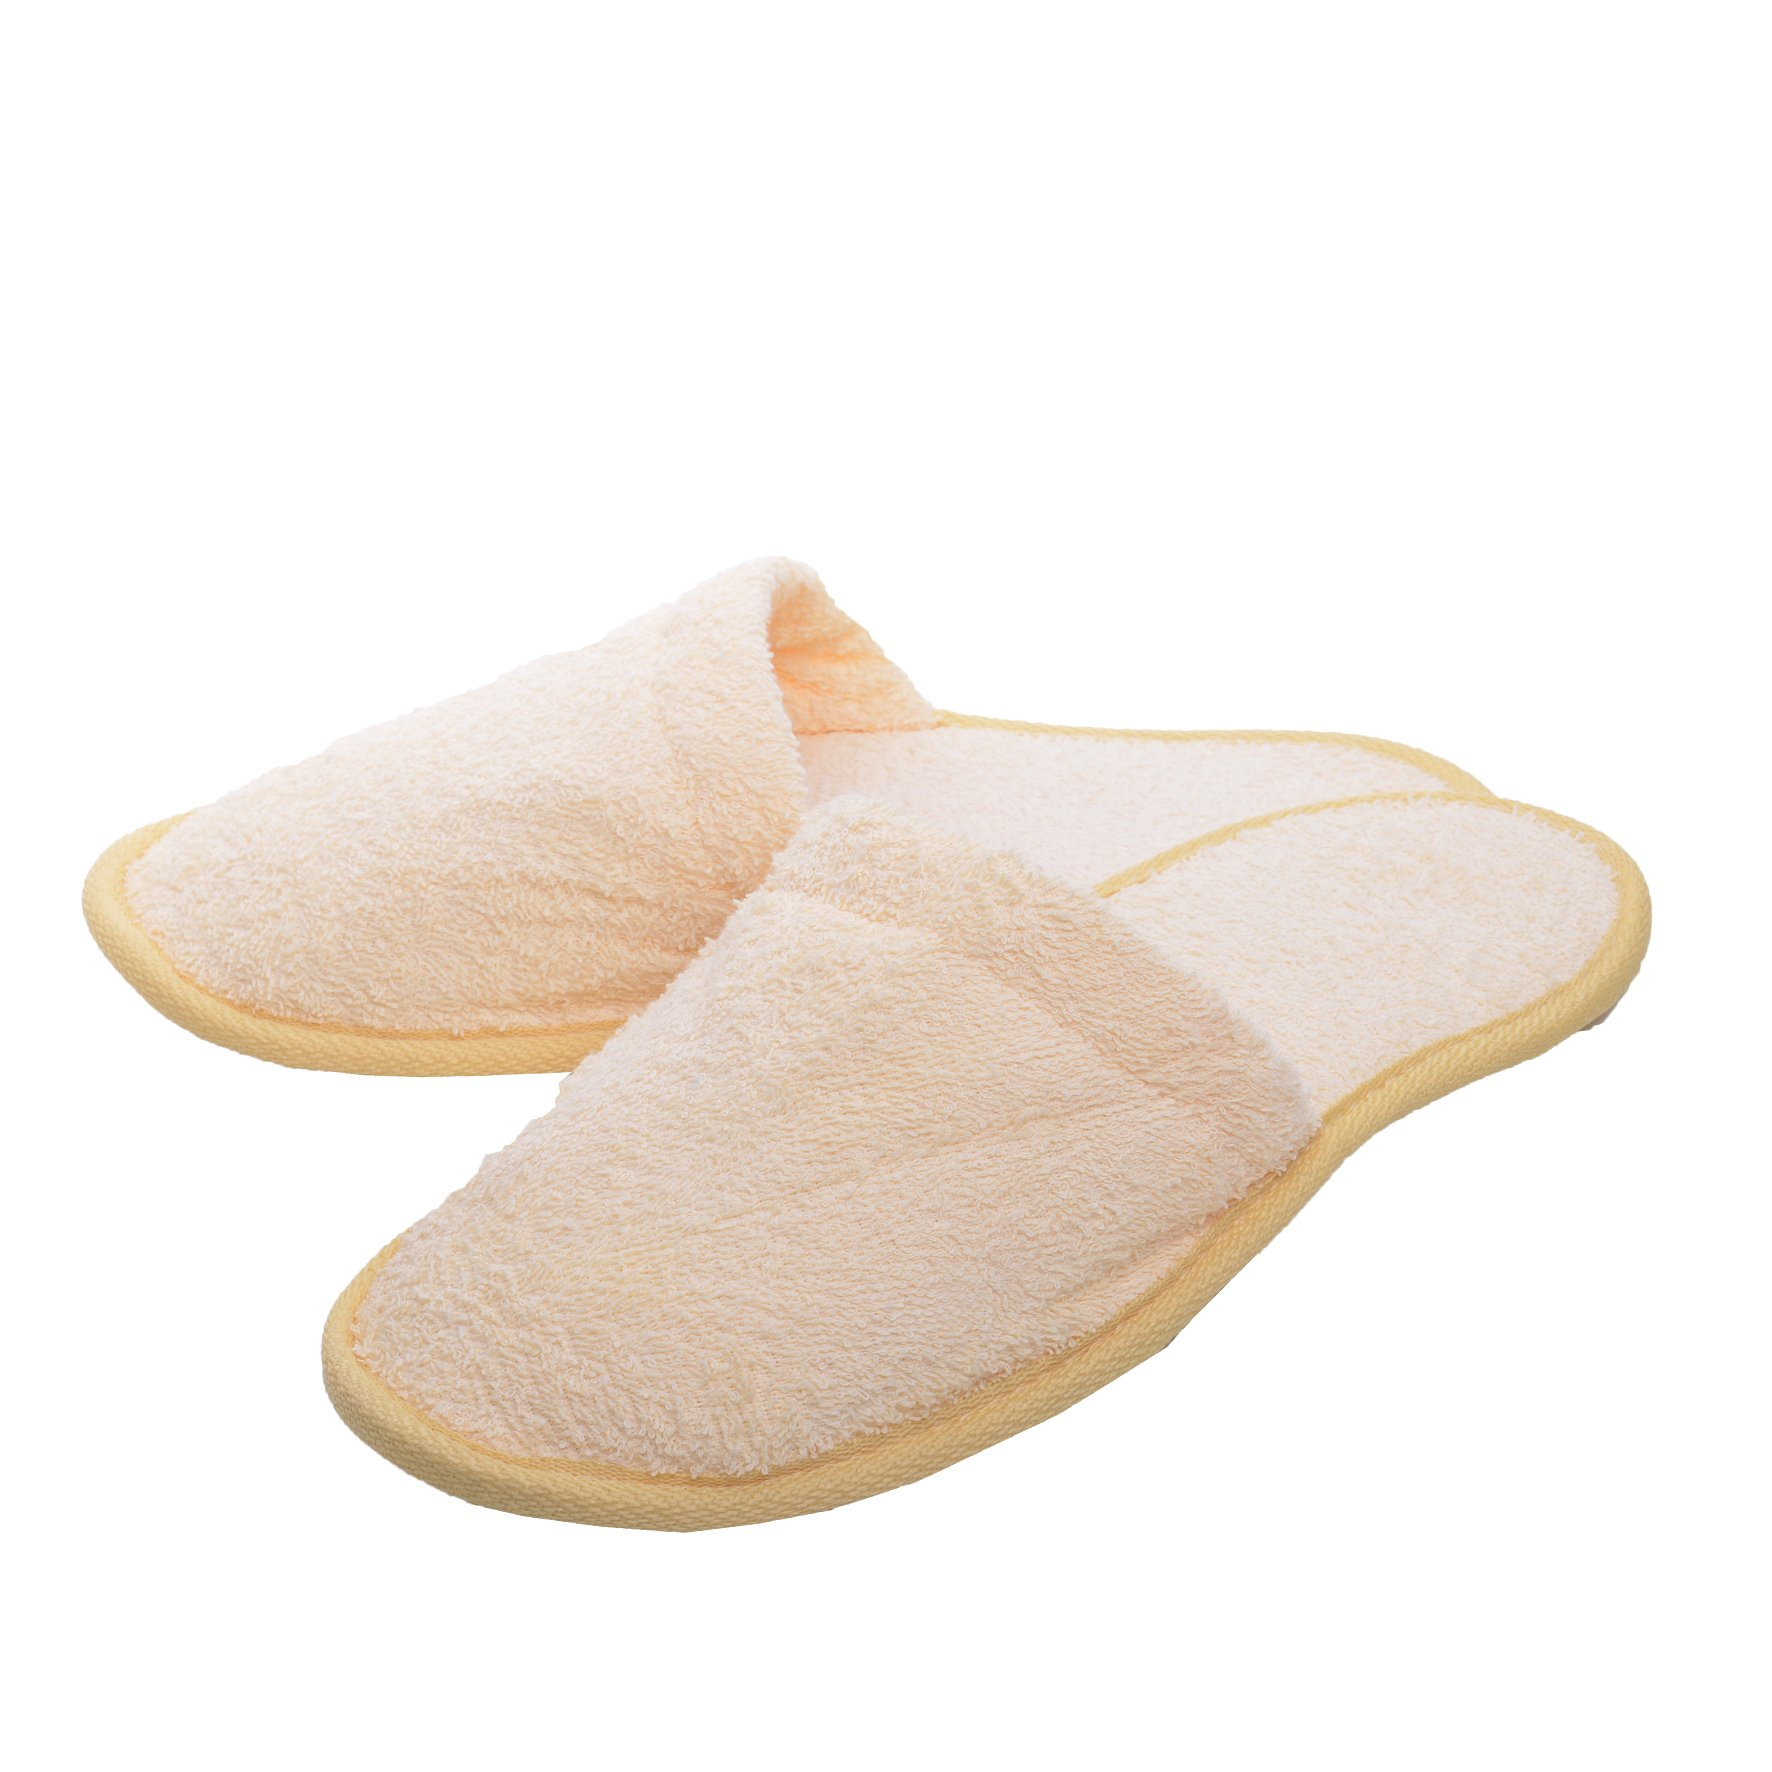 Minteks Hotel Spa Slippers for Women and Men, Washable Cotton Guests Slipper in Bulk Closed Toe Fit Sizes Btw 7-10 (Assorted | 6 Pairs)